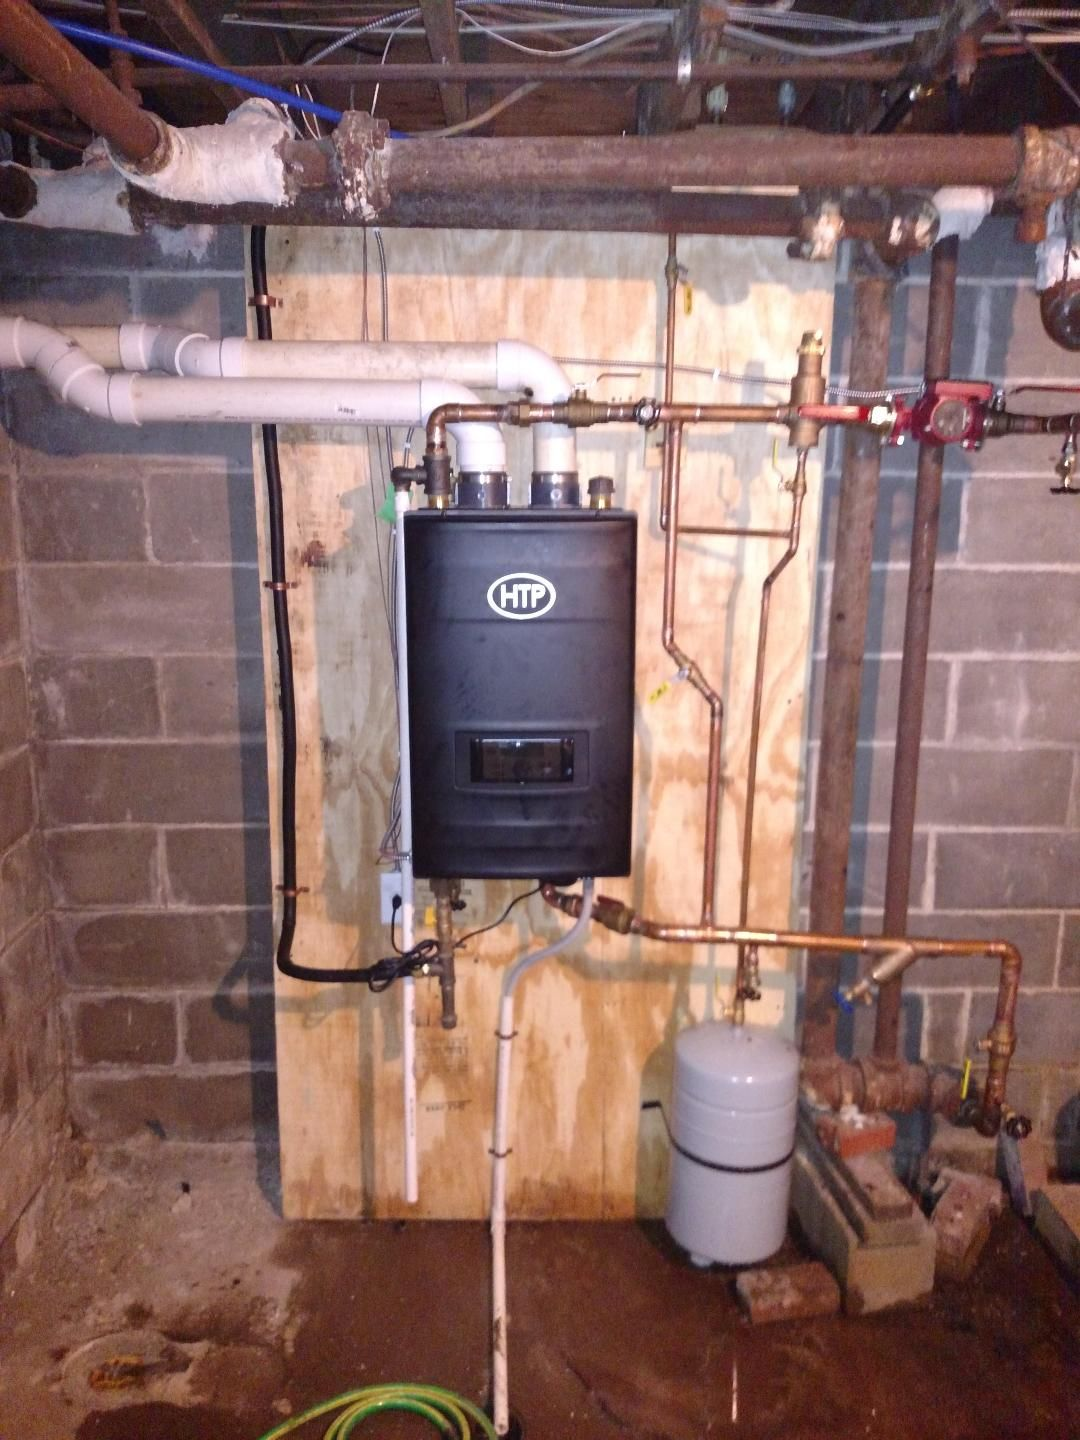 Water Heater Installation: HTP Boiler<br/>Ackley & Iowa Falls, IA